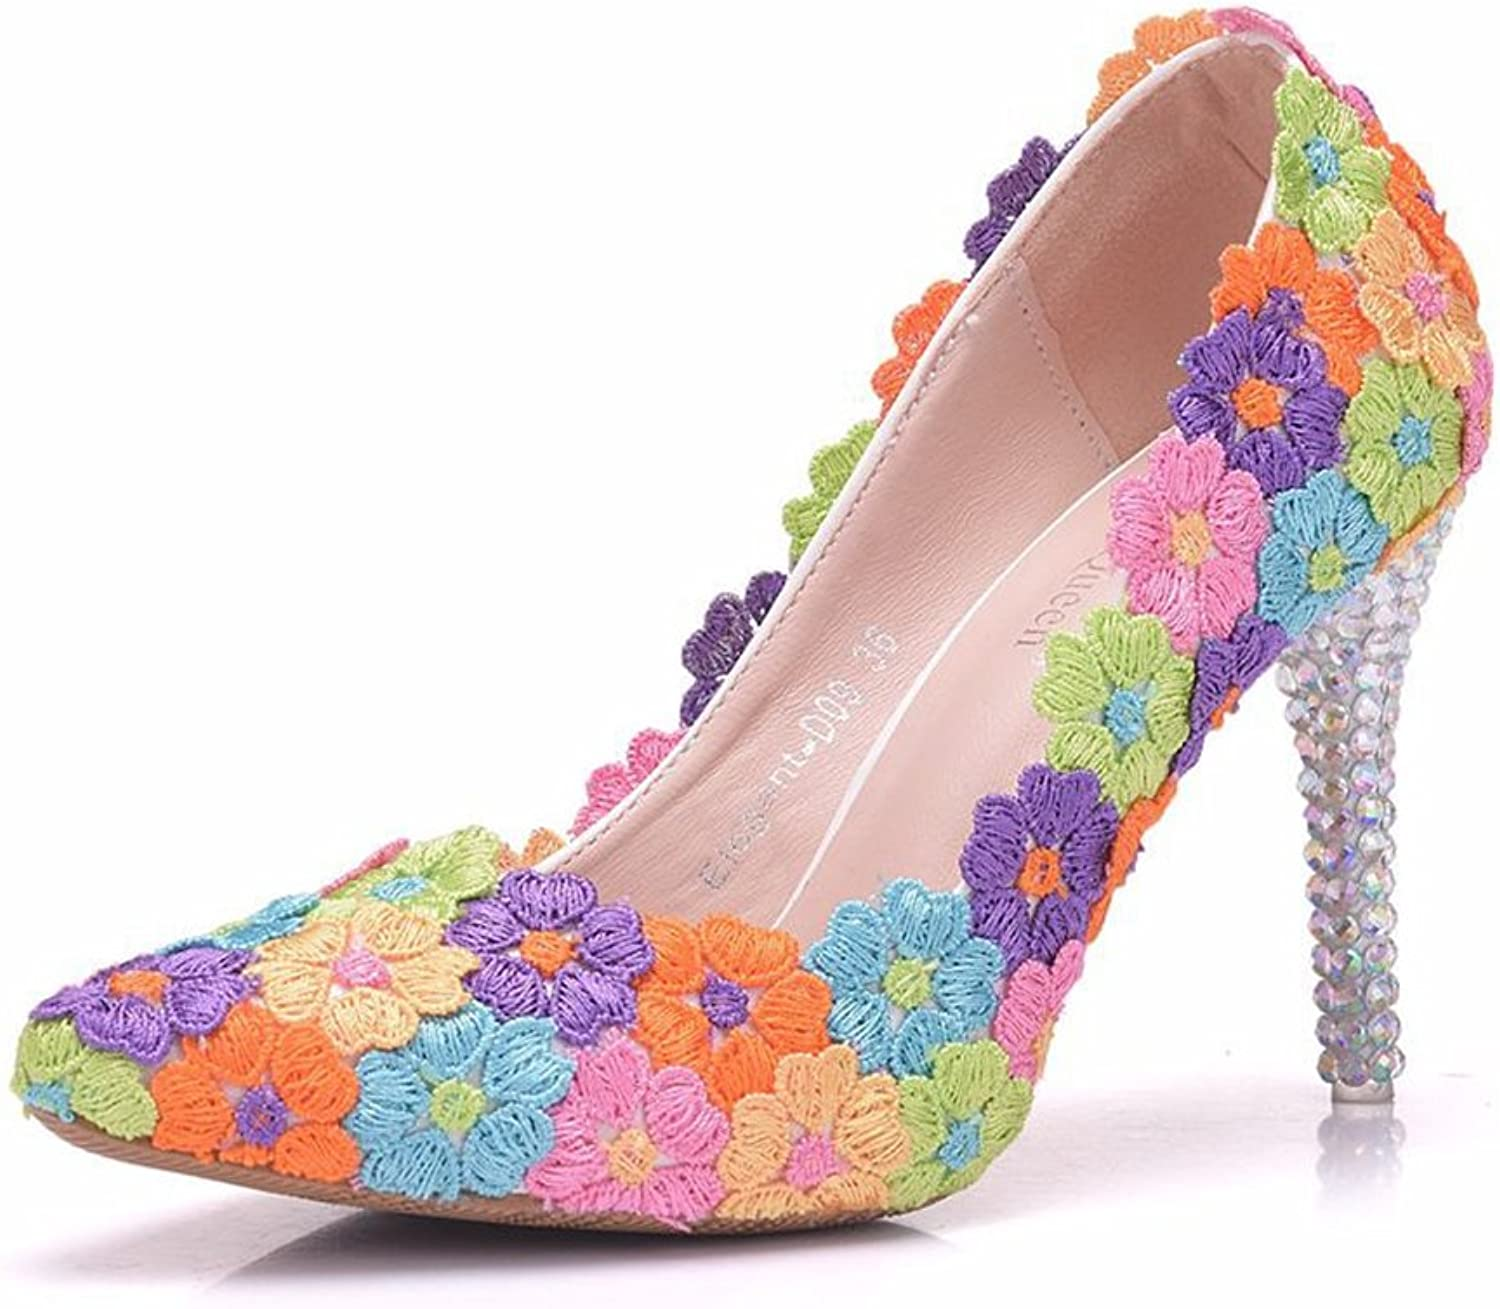 SUNNY Store Women Pumps shoes High Heels Wedding shoes Elegant Rhinestone Pointed Toe shoes Party shoes